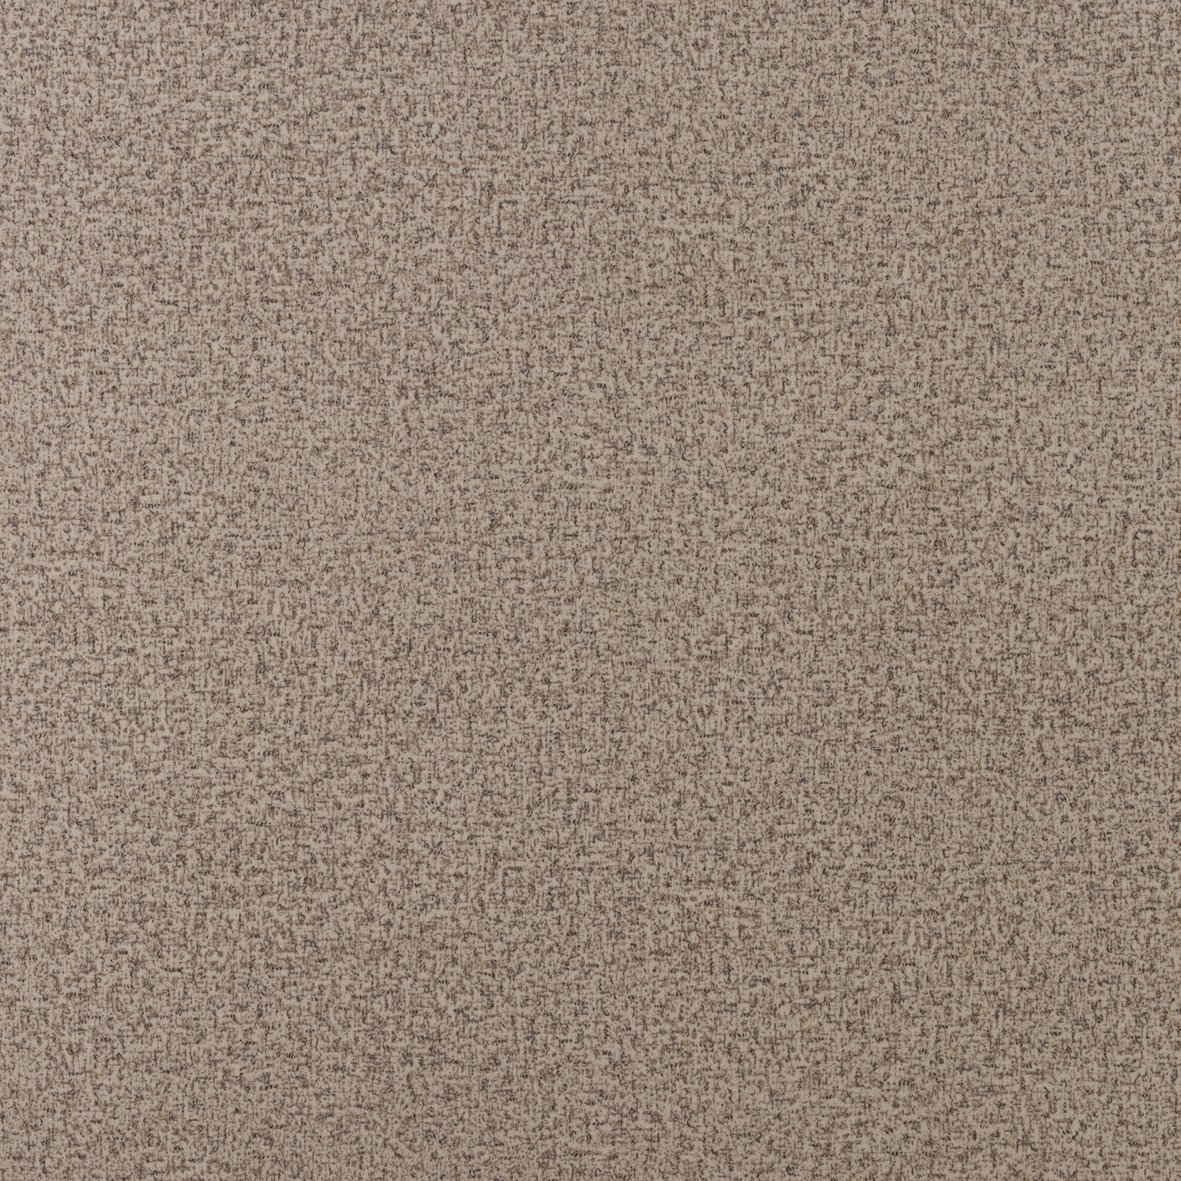 Flotex Classic Flooring Available In 6 Designs 24 Off